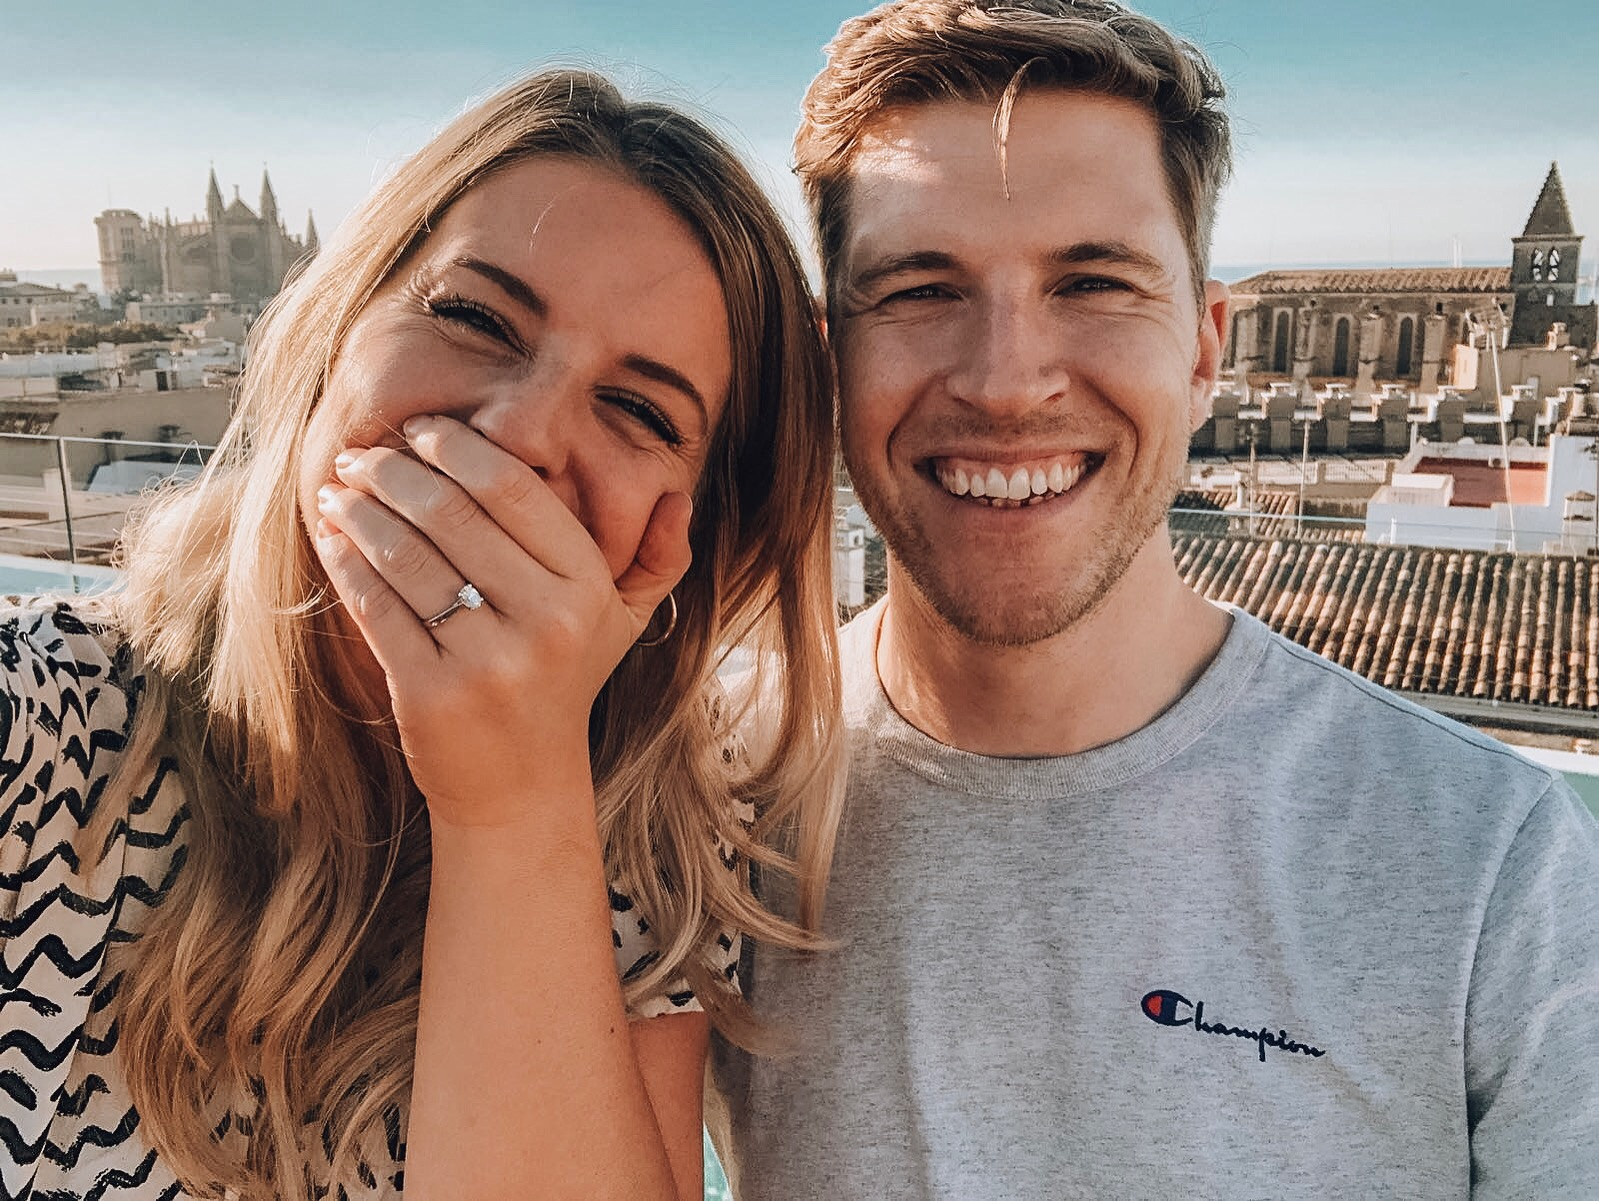 WE GOT ENGAGED!!  SURPRISE TRIP TO MALLORCA WITH MY FIANCÉ